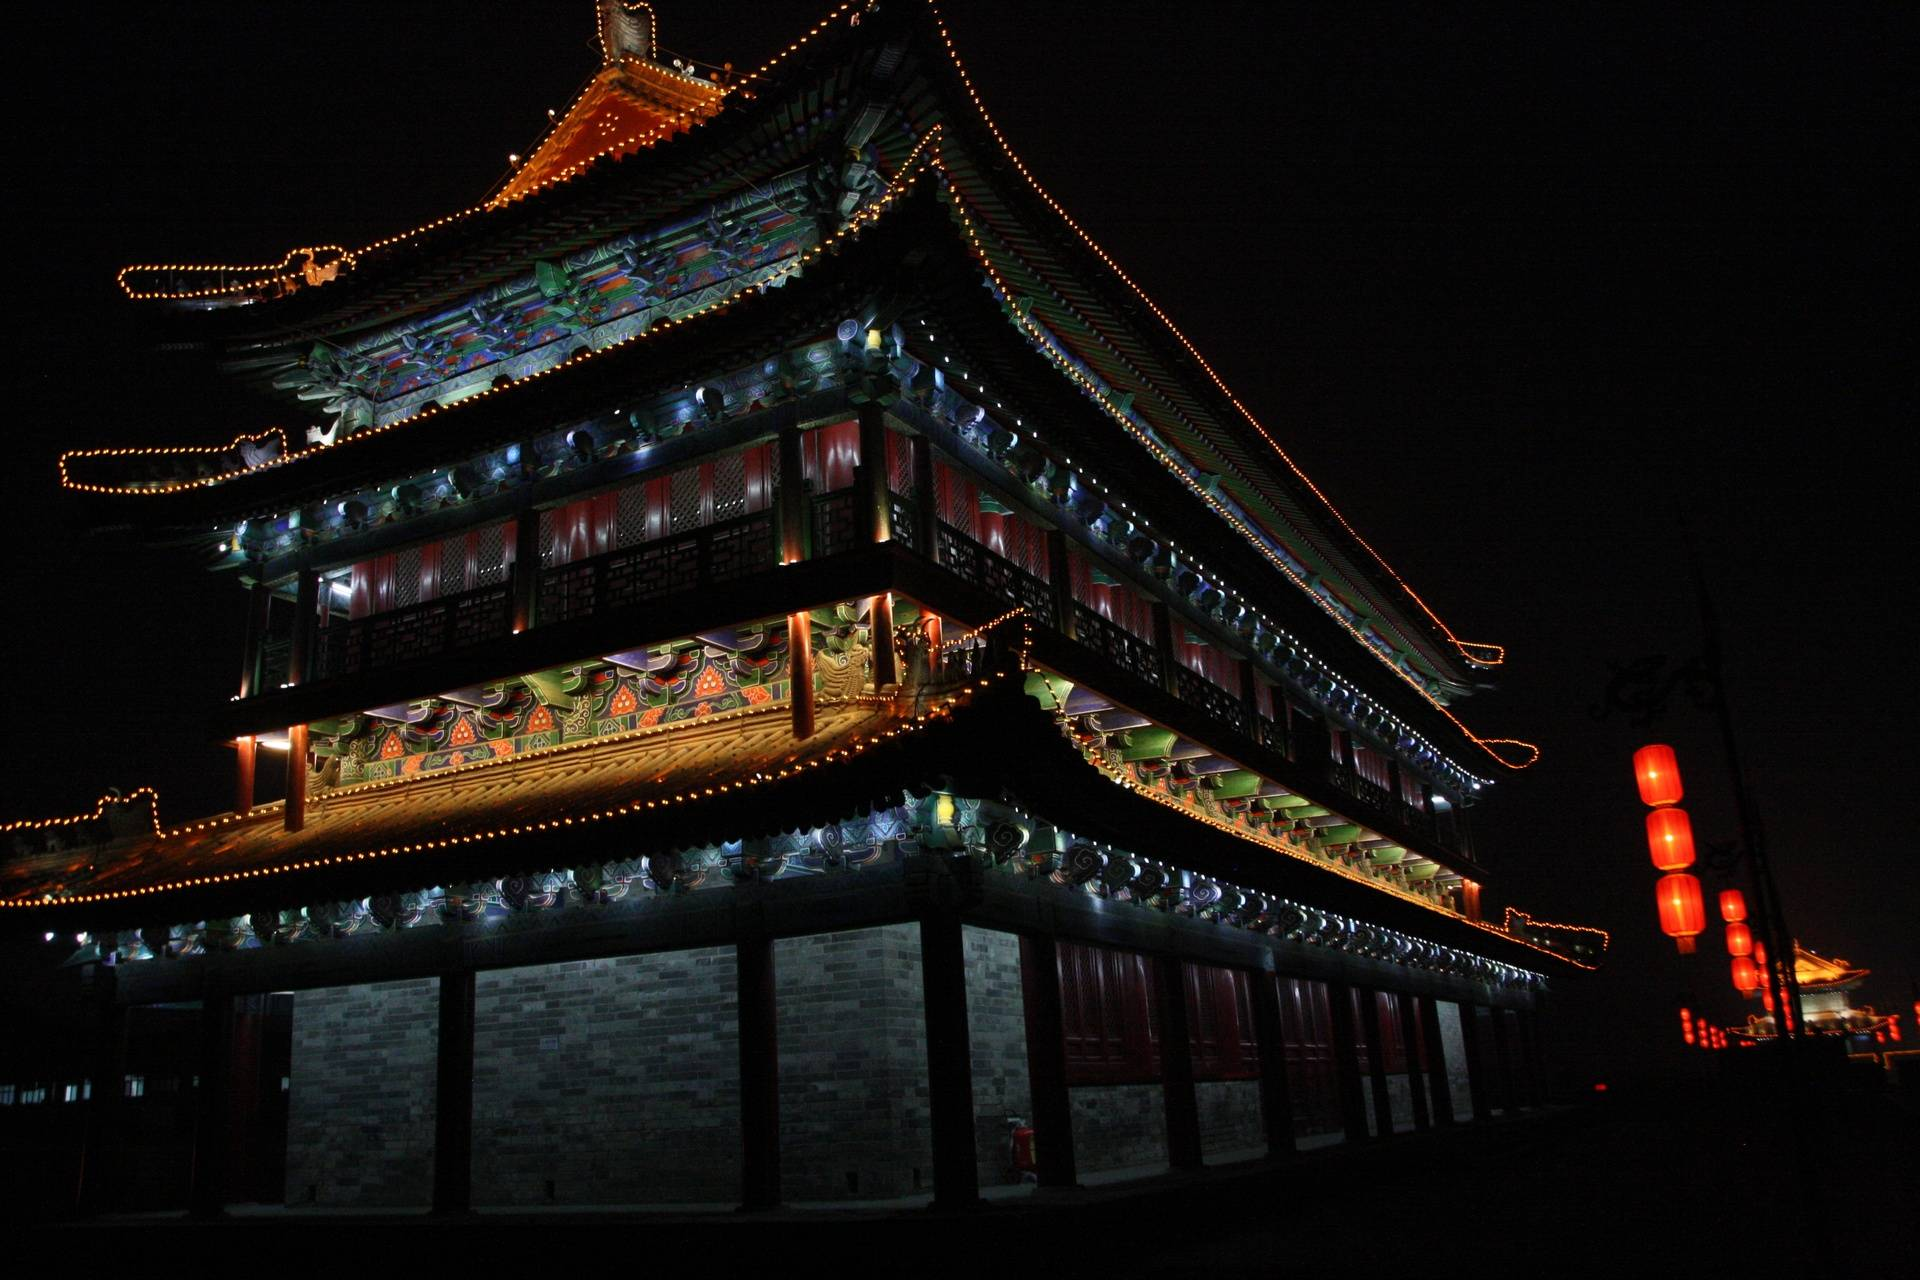 Part of City Wall in Xi'an at night